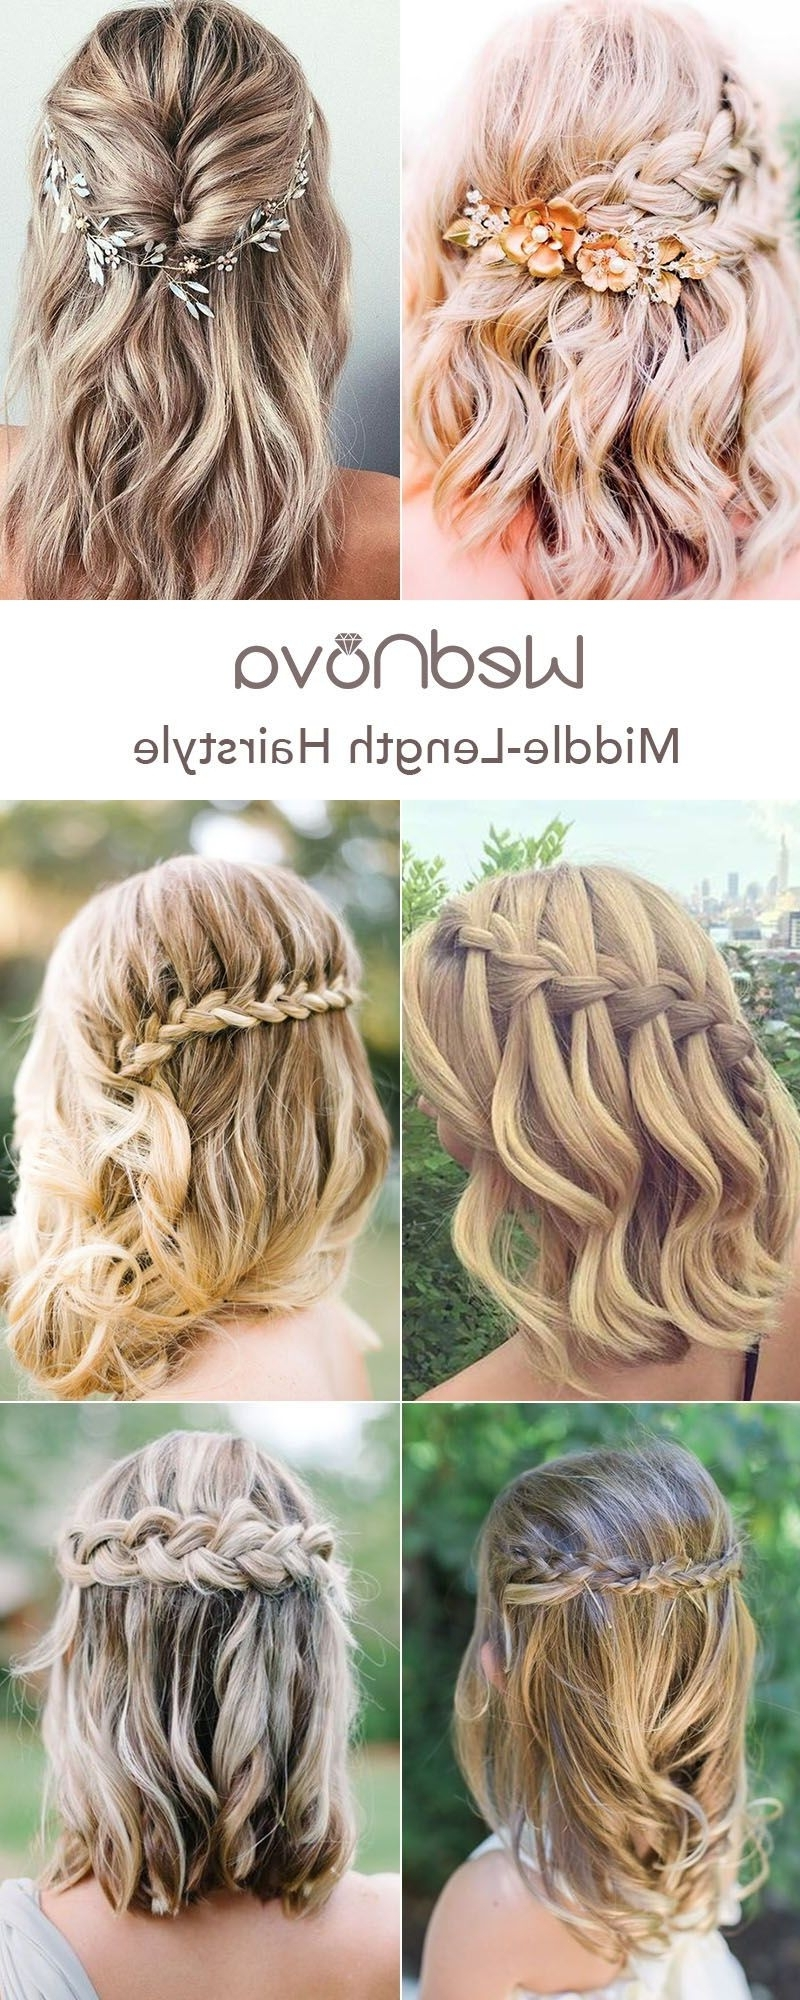 48 Easy Wedding Hairstyles Best Guide For Your Bridesmaids Hairstyles For Weddings Medium Hair Down